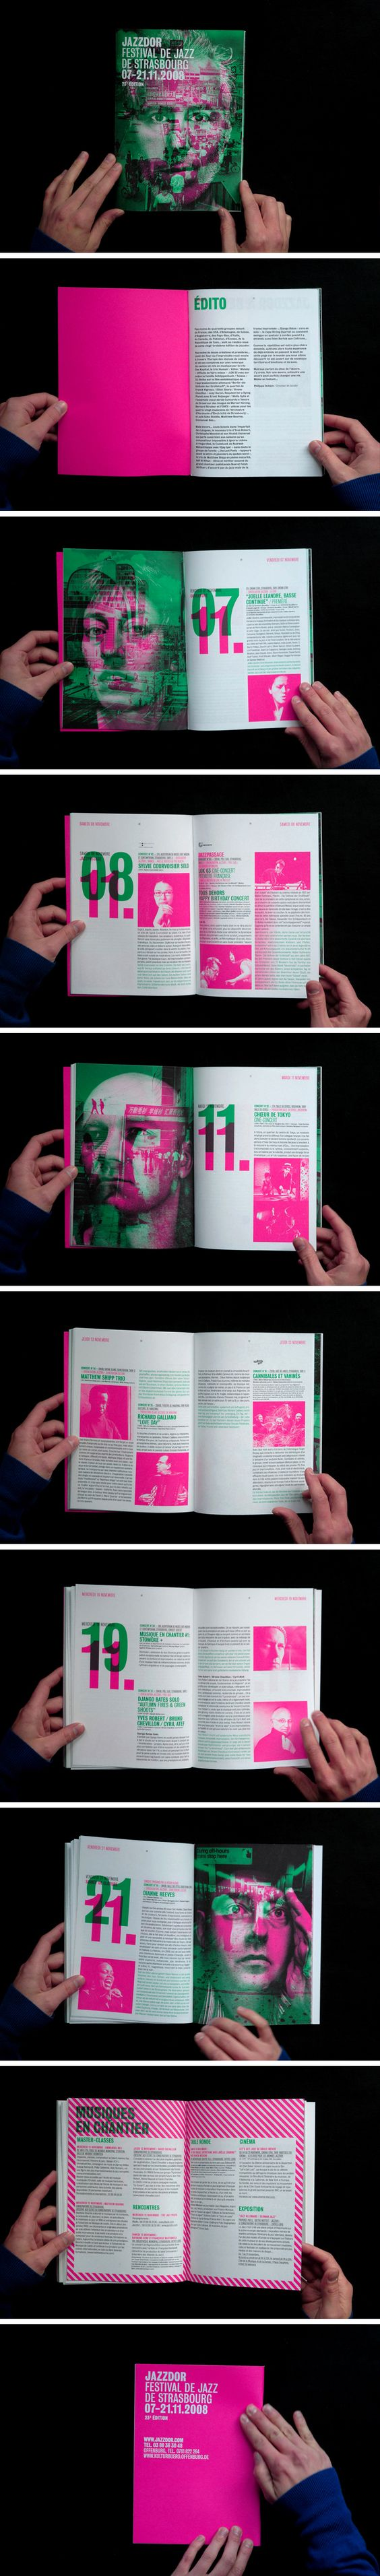 """Jazzdor, it's the Strasbourg Jazz festival. The French agency """"Helmo"""" has designed a #brochure, #posters and program in 3 colors."""